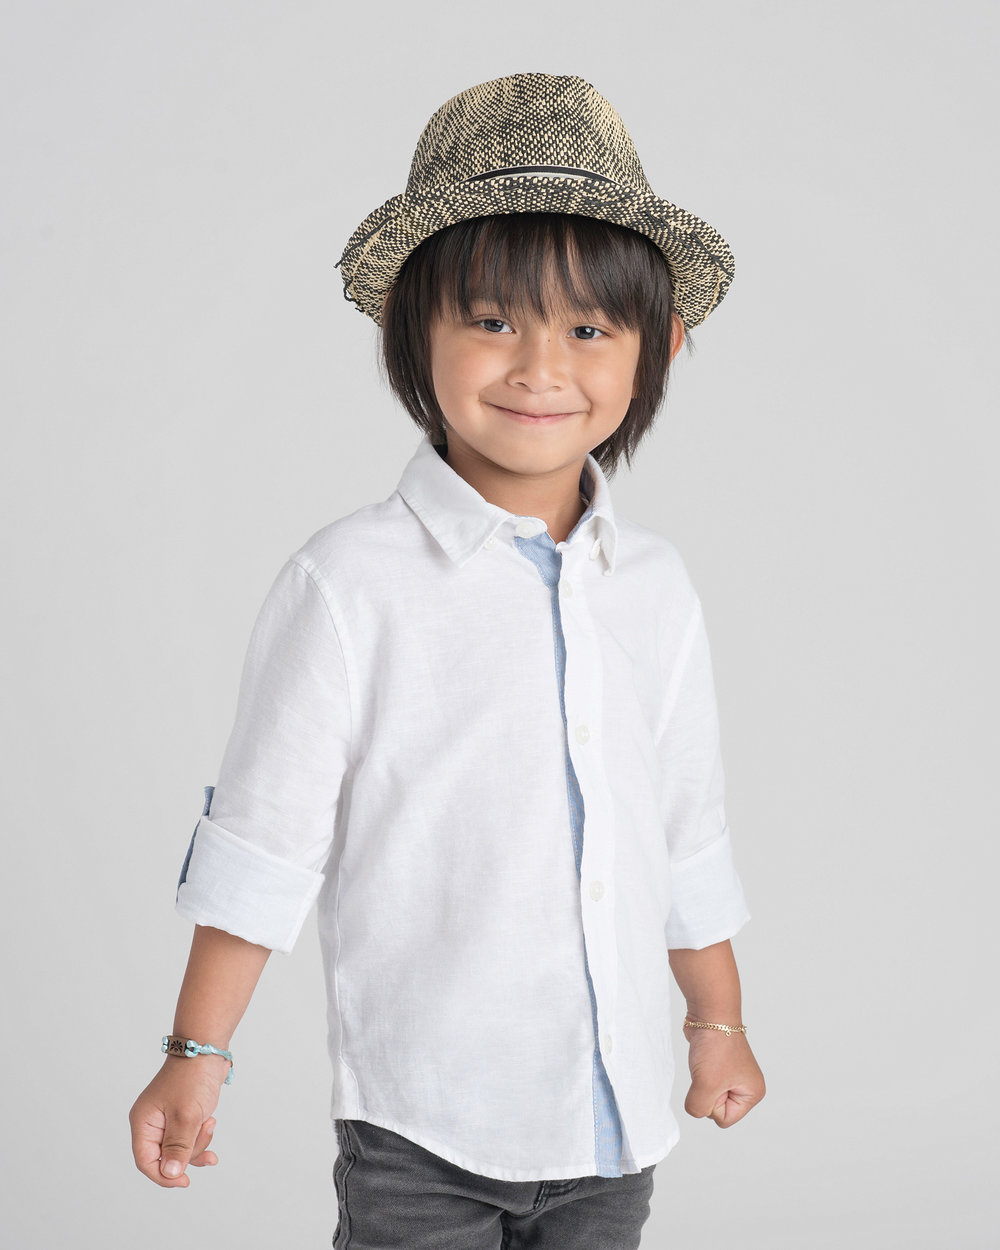 studio portrait of a young boy in a fedora